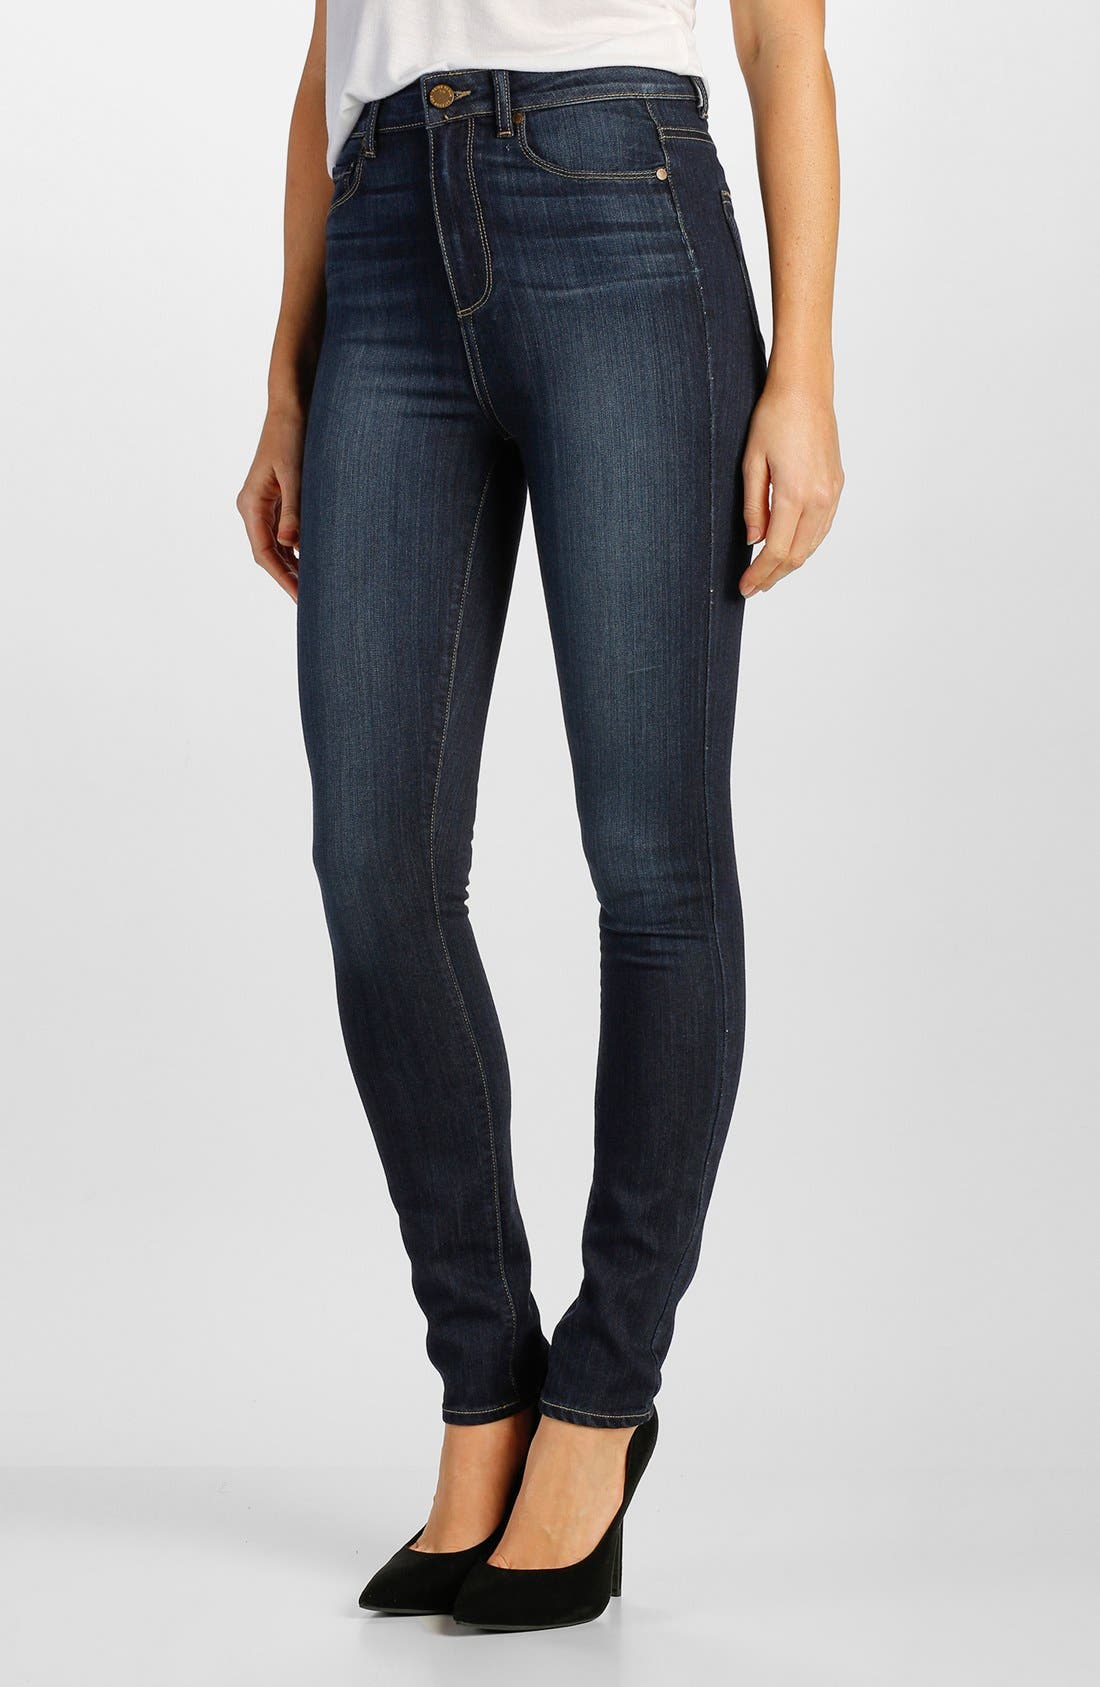 Alternate Image 1 Selected - Paige Denim 'Margot' High Rise Ultra Skinny Jeans (Alanis)